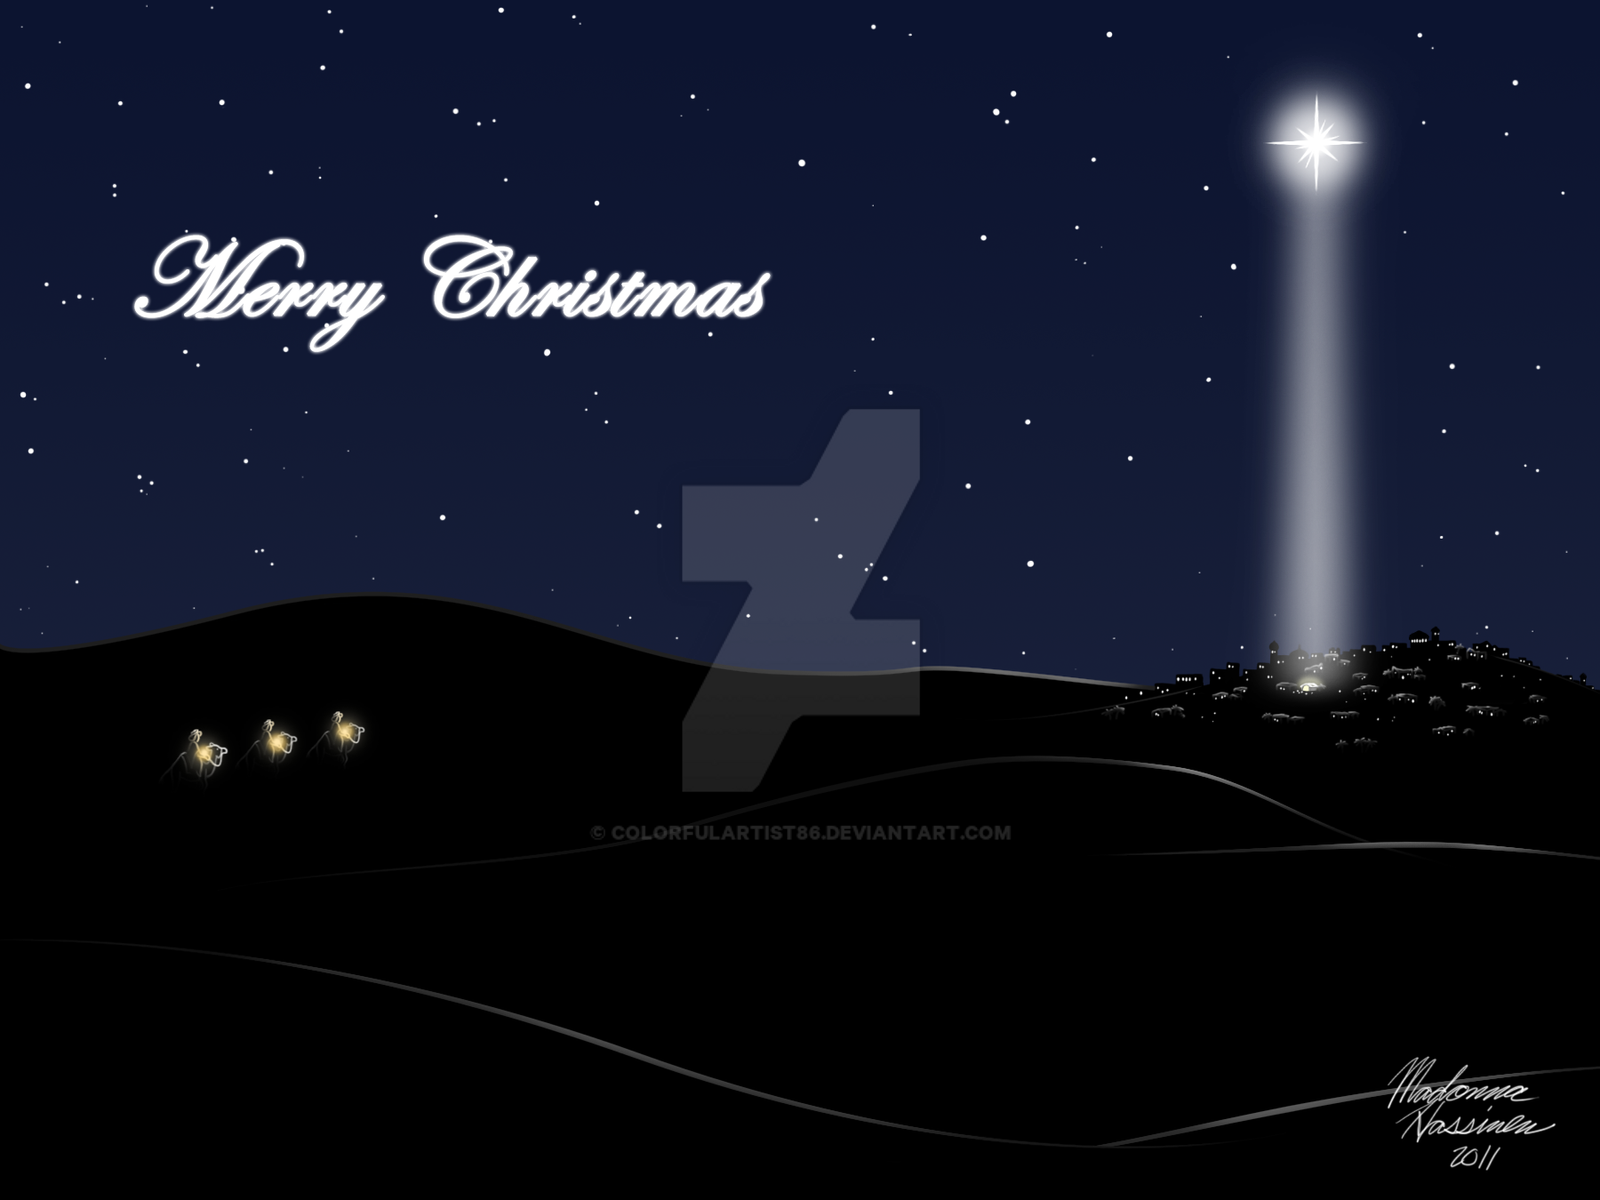 Merry Christmas 2011 Star Of Bethlehem By Colorfulartist86 On